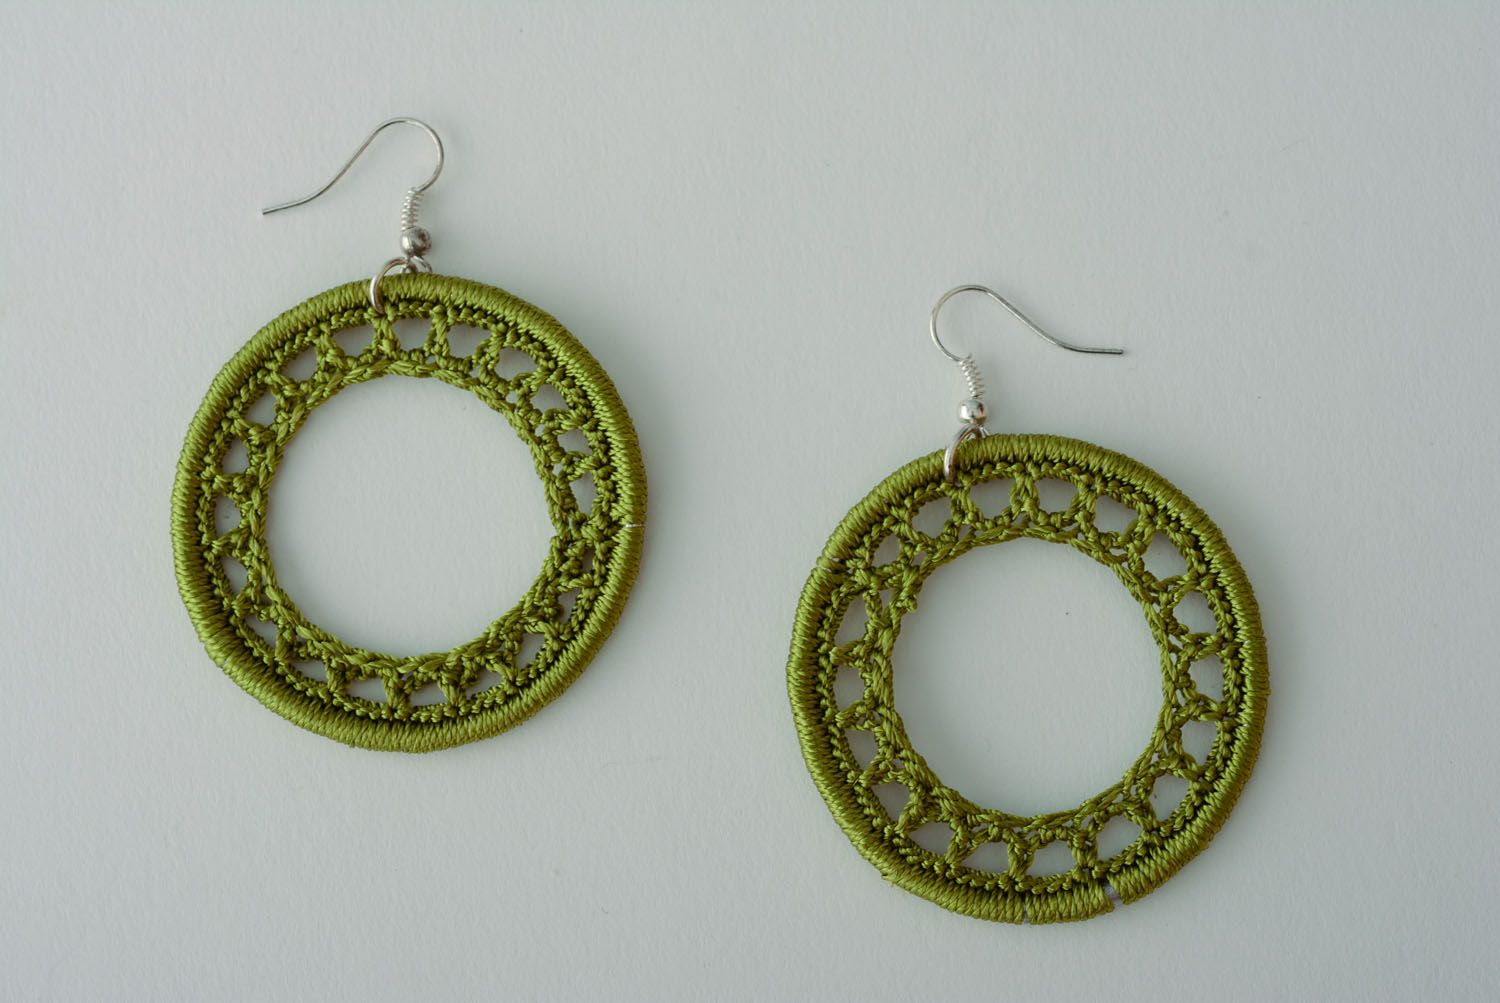 Homemade woven earrings photo 1